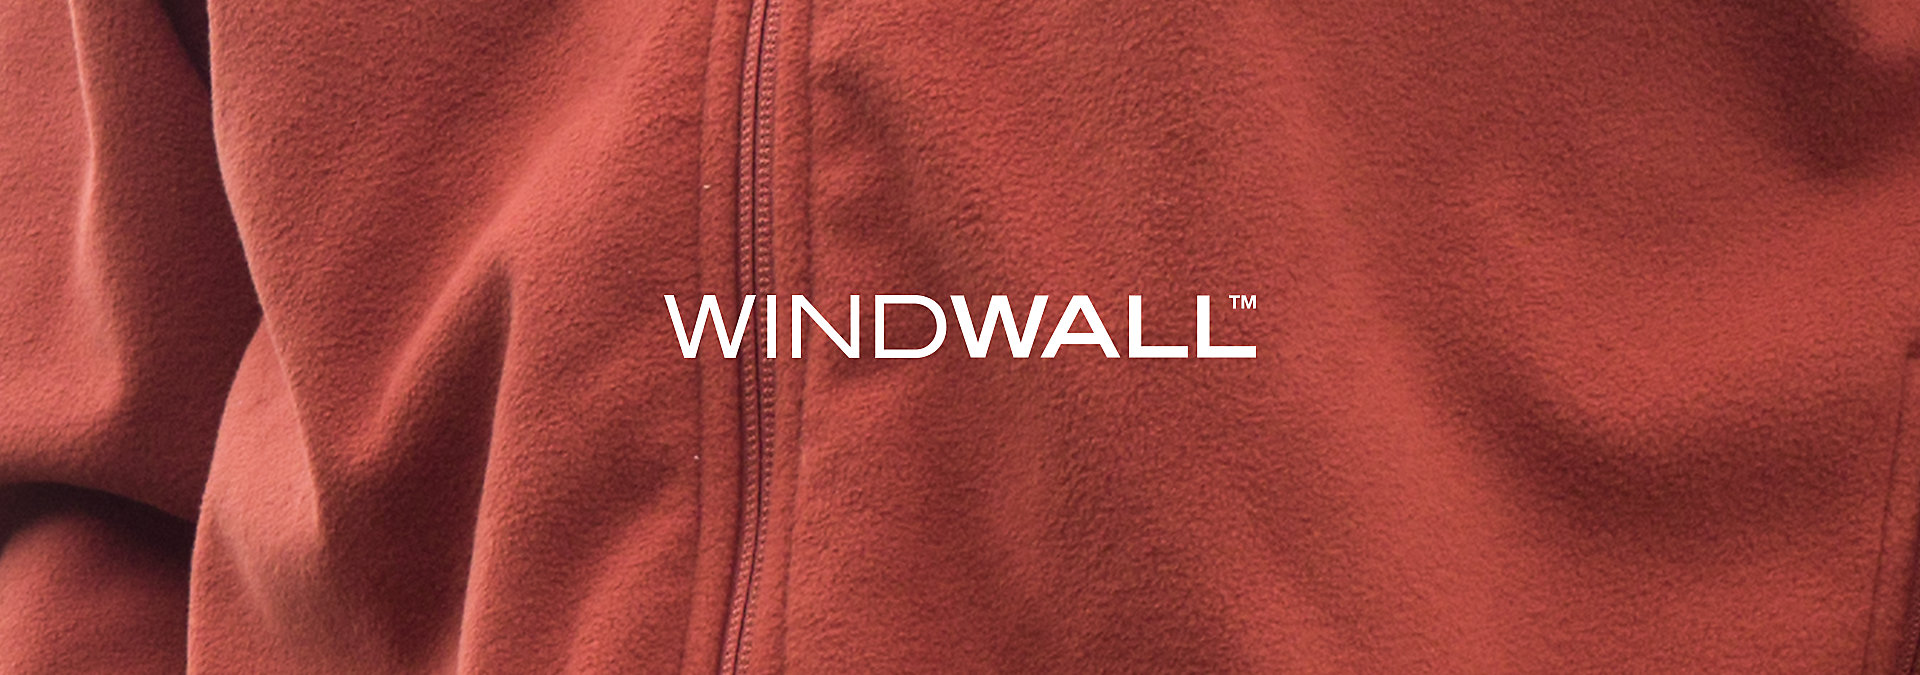 WINDWALL